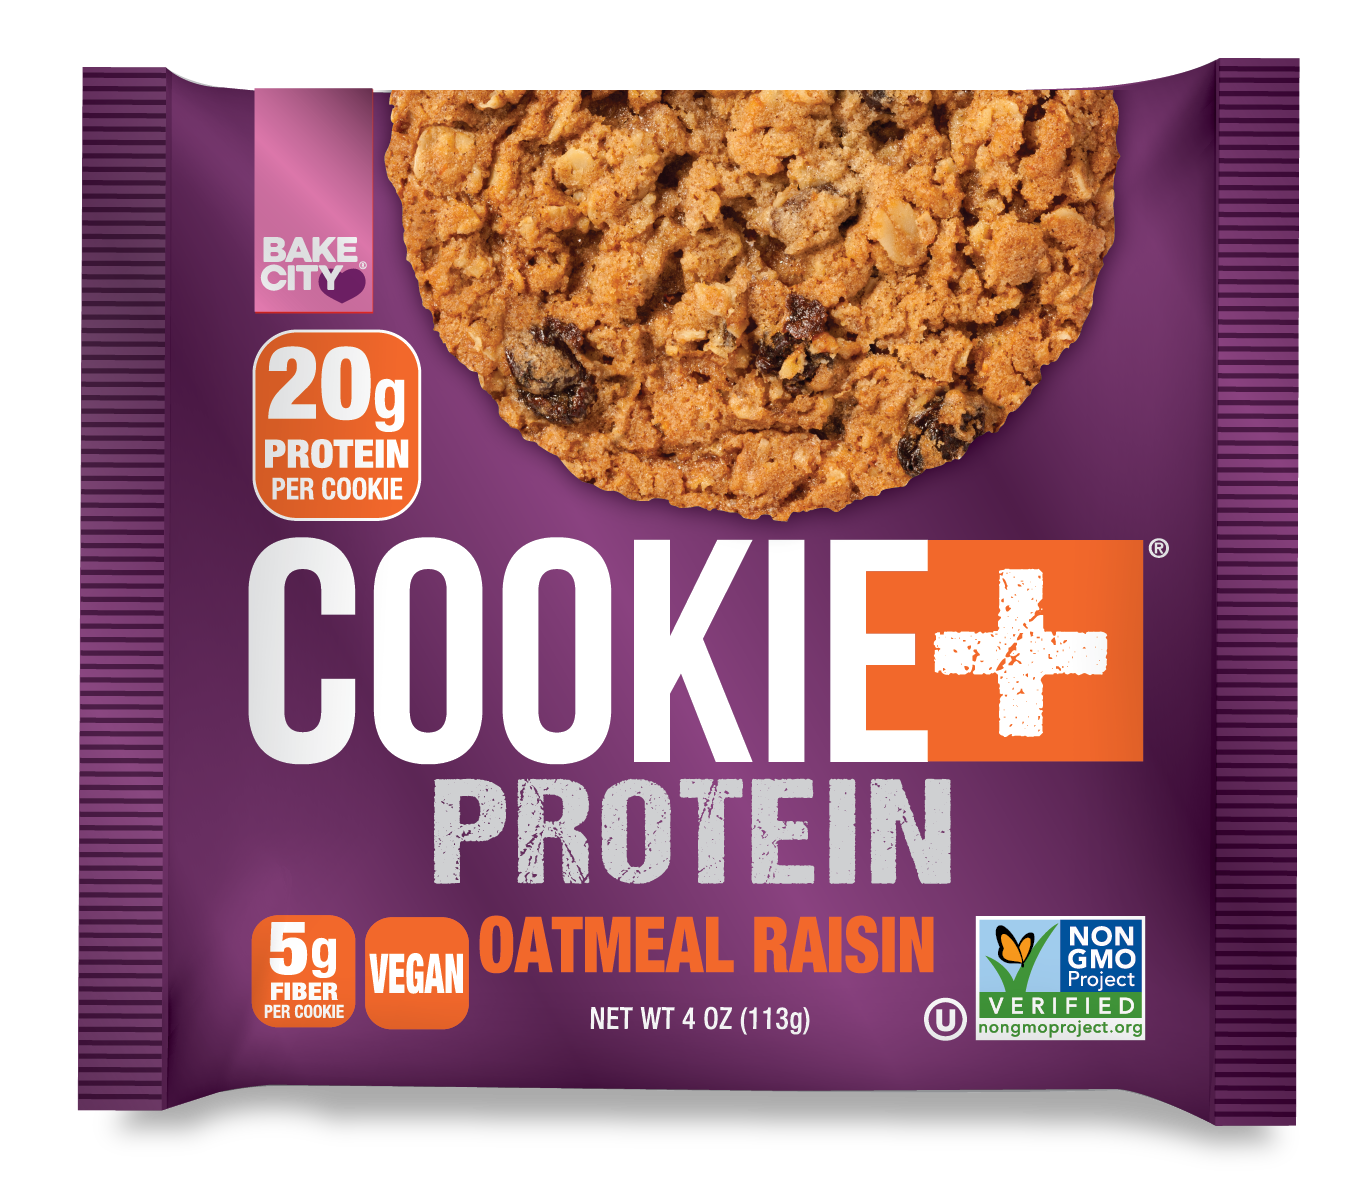 Cookie+ Protein Oatmeal Raisin - Cookie+ Protein